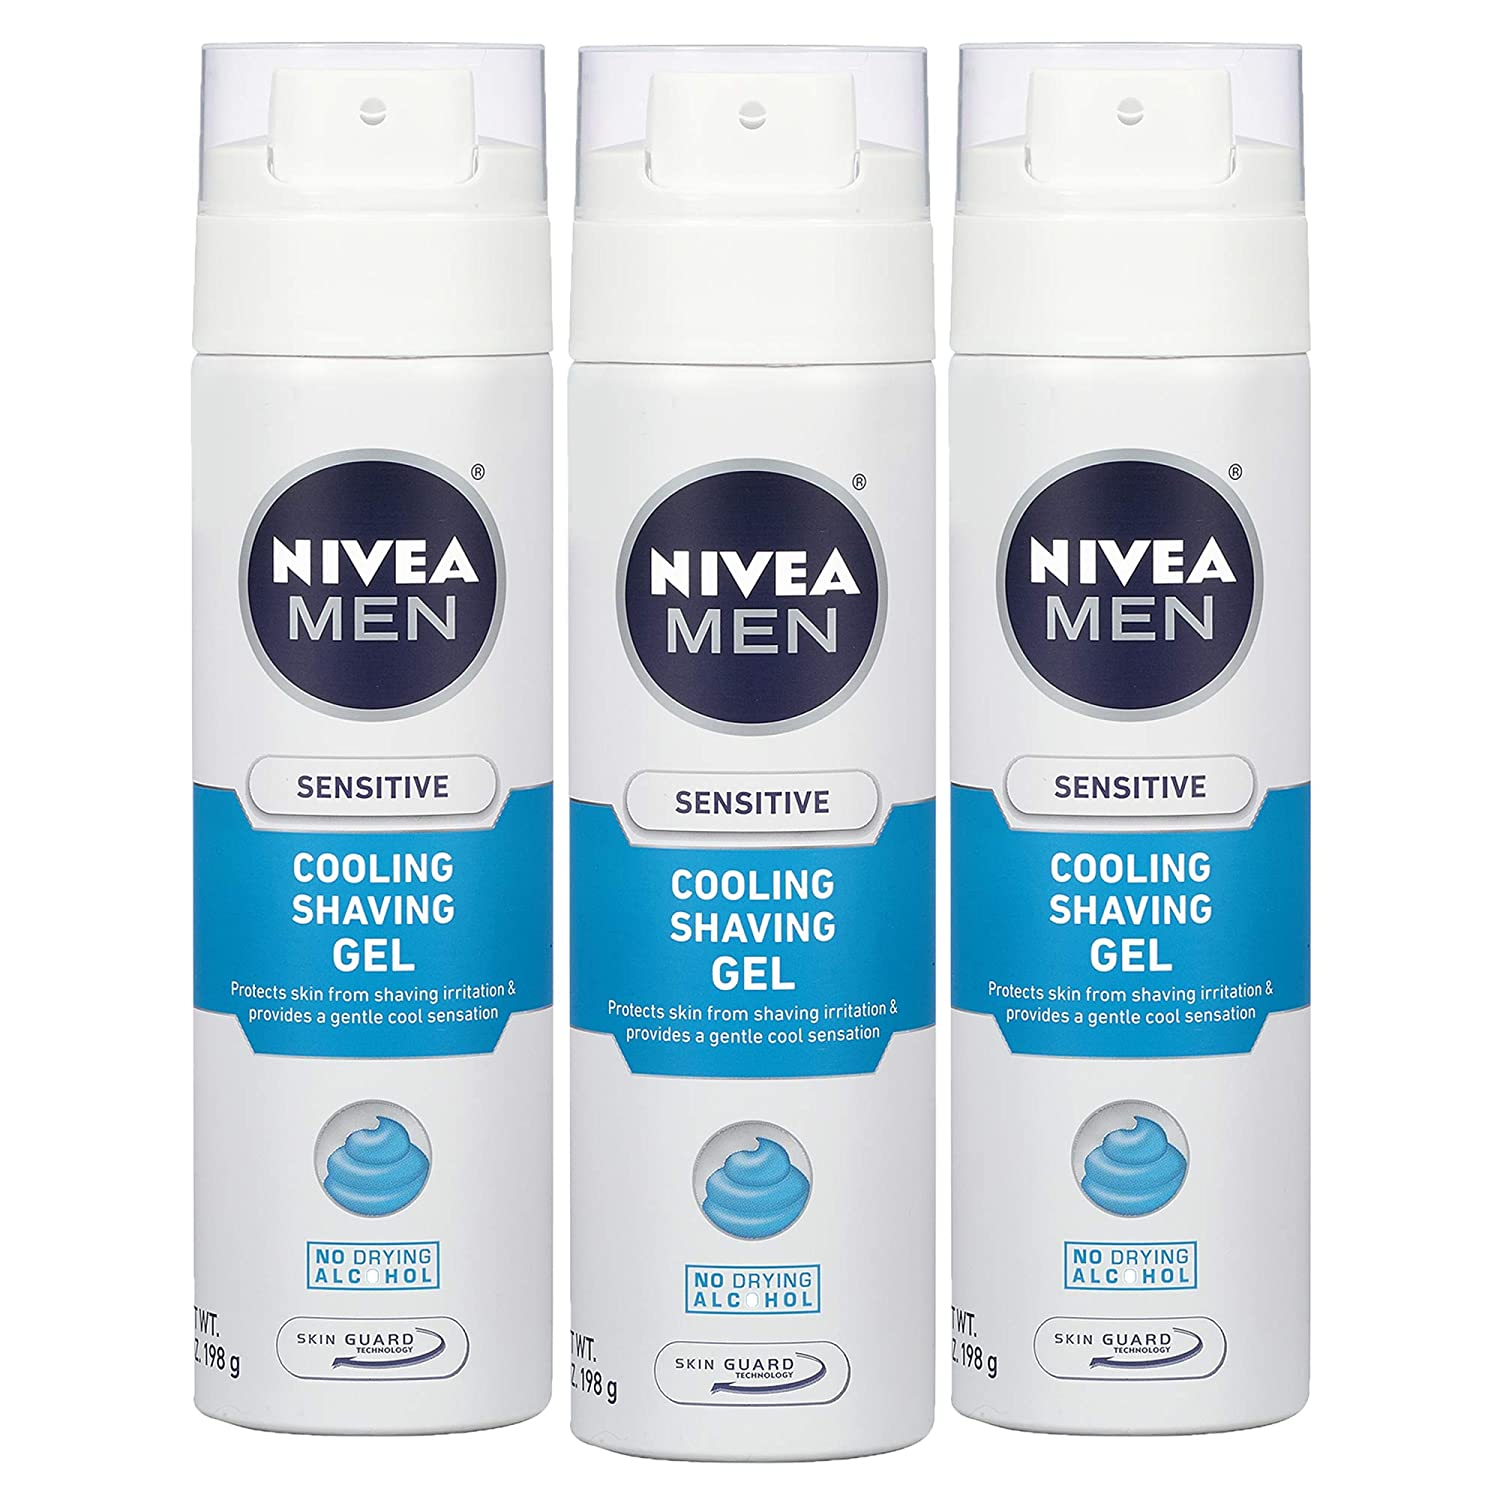 NIVEA Men Sensitive Cooling Shaving Gel - Gentle Cooling Sensation while Shaving - 7 oz. Can (Pack of 3)